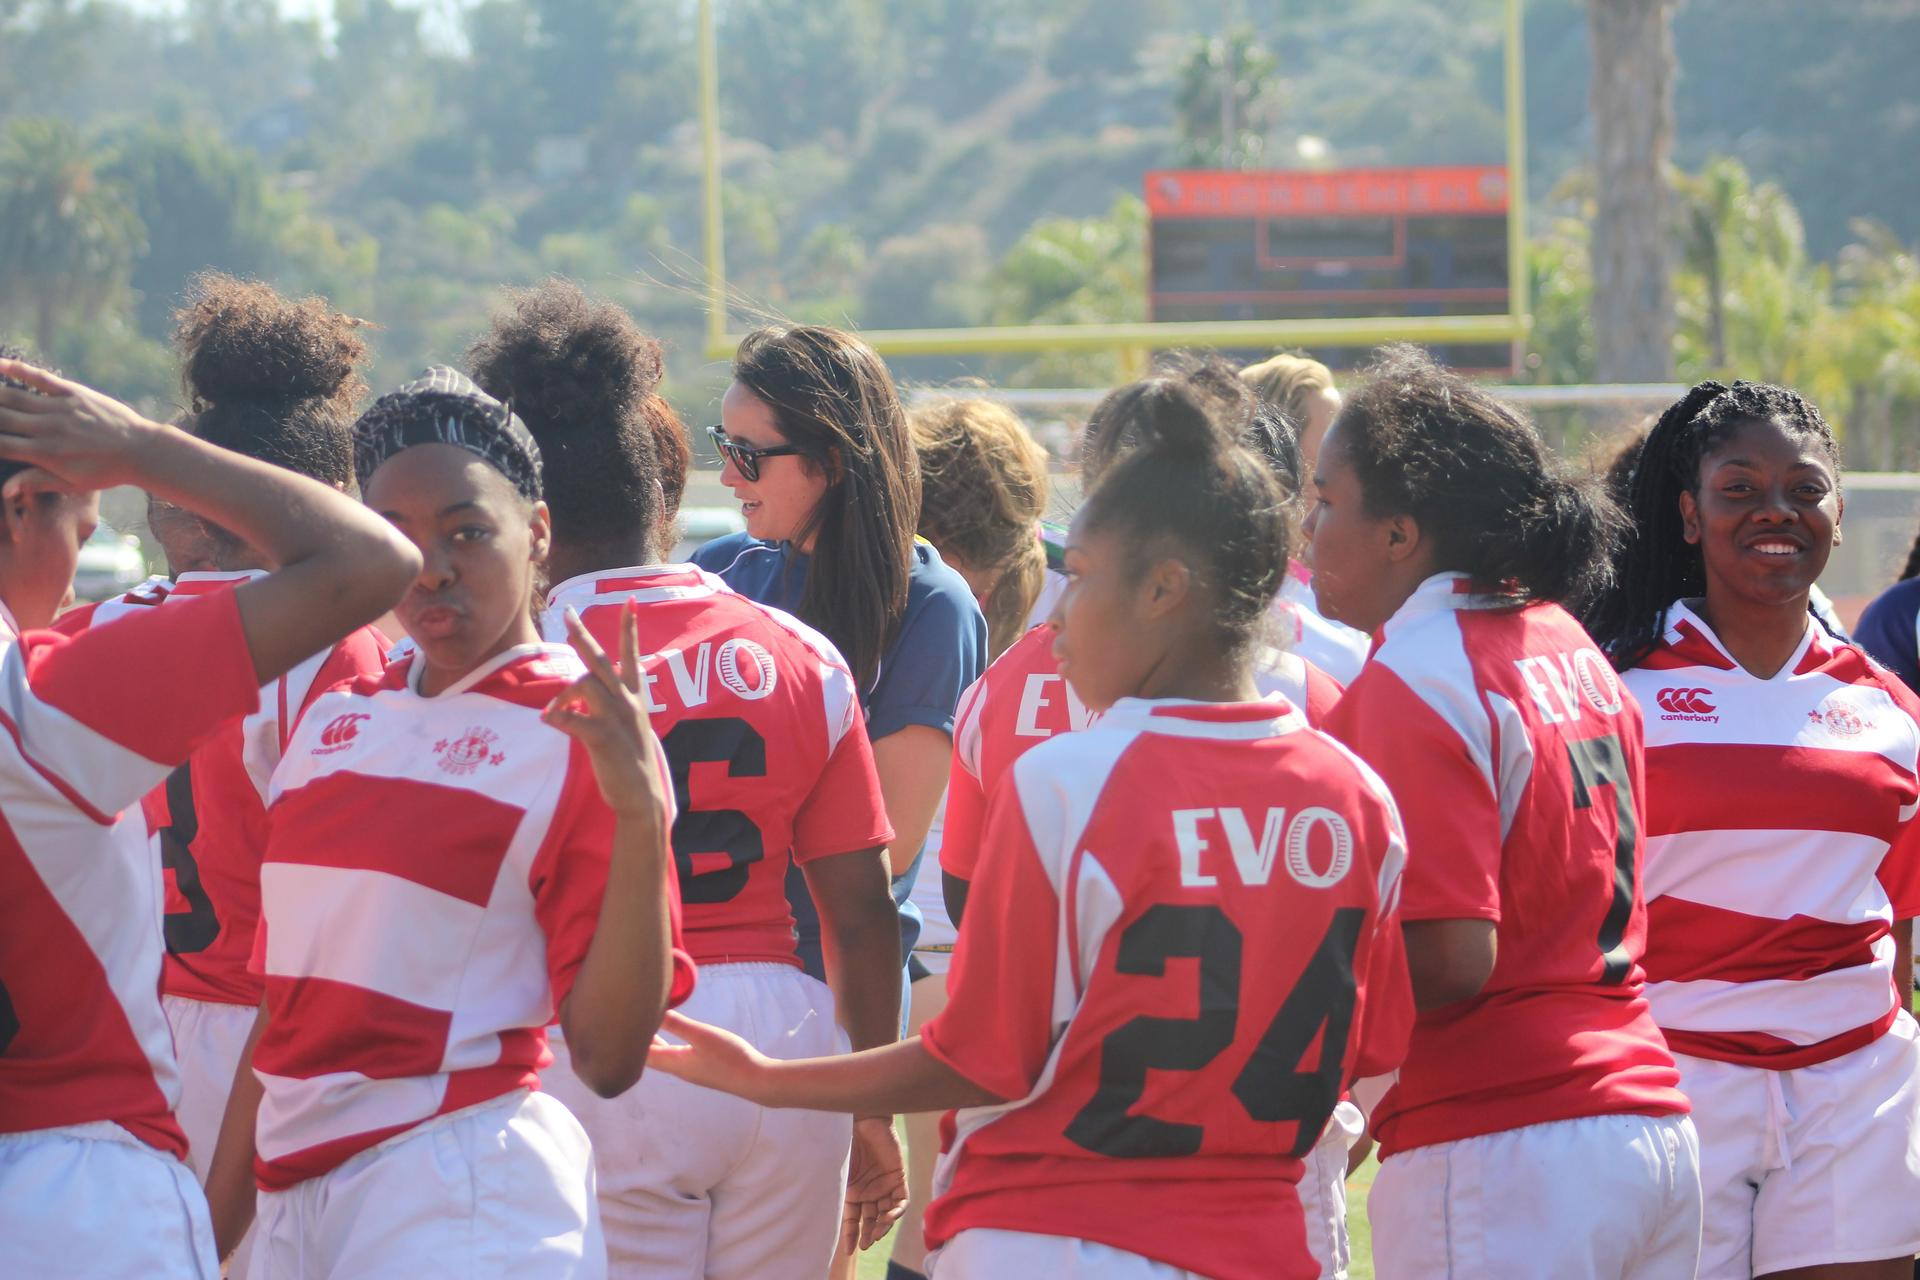 View Park Prep High School Girls representing in the Southern California Youth Rugby Sevens League